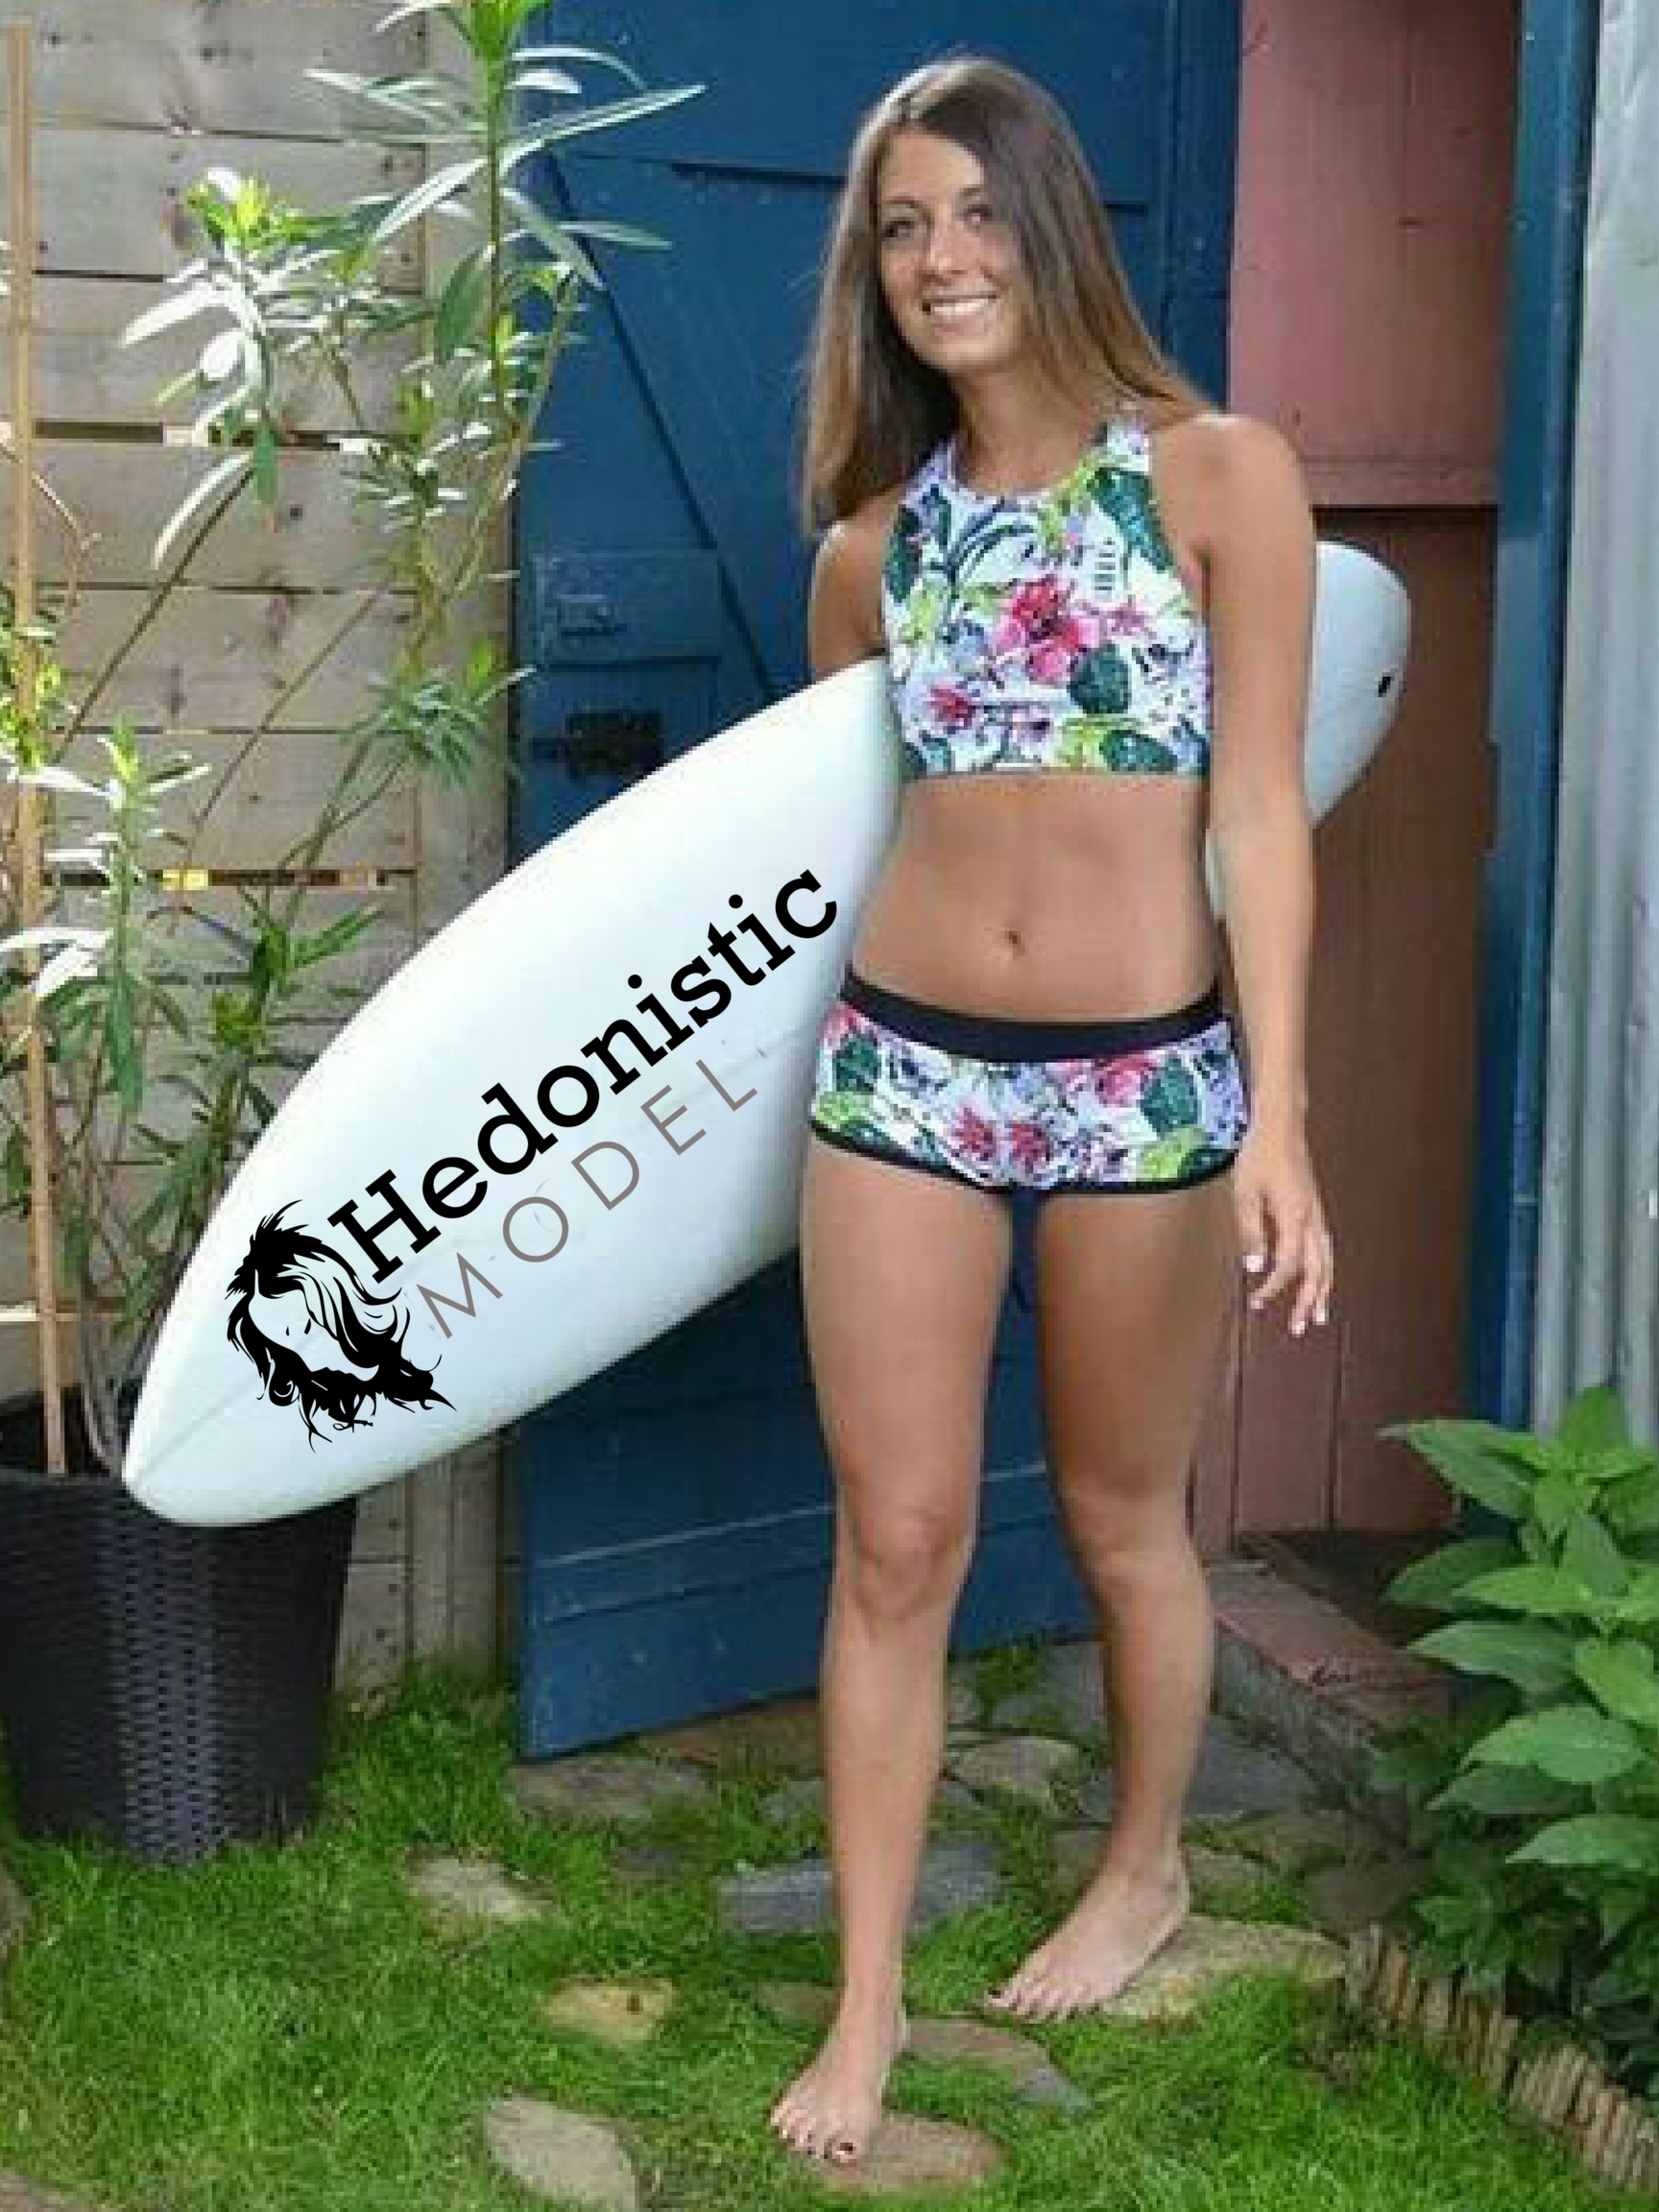 Display Your Logo And Site Text On 10 HD Surfboard With Girls Images